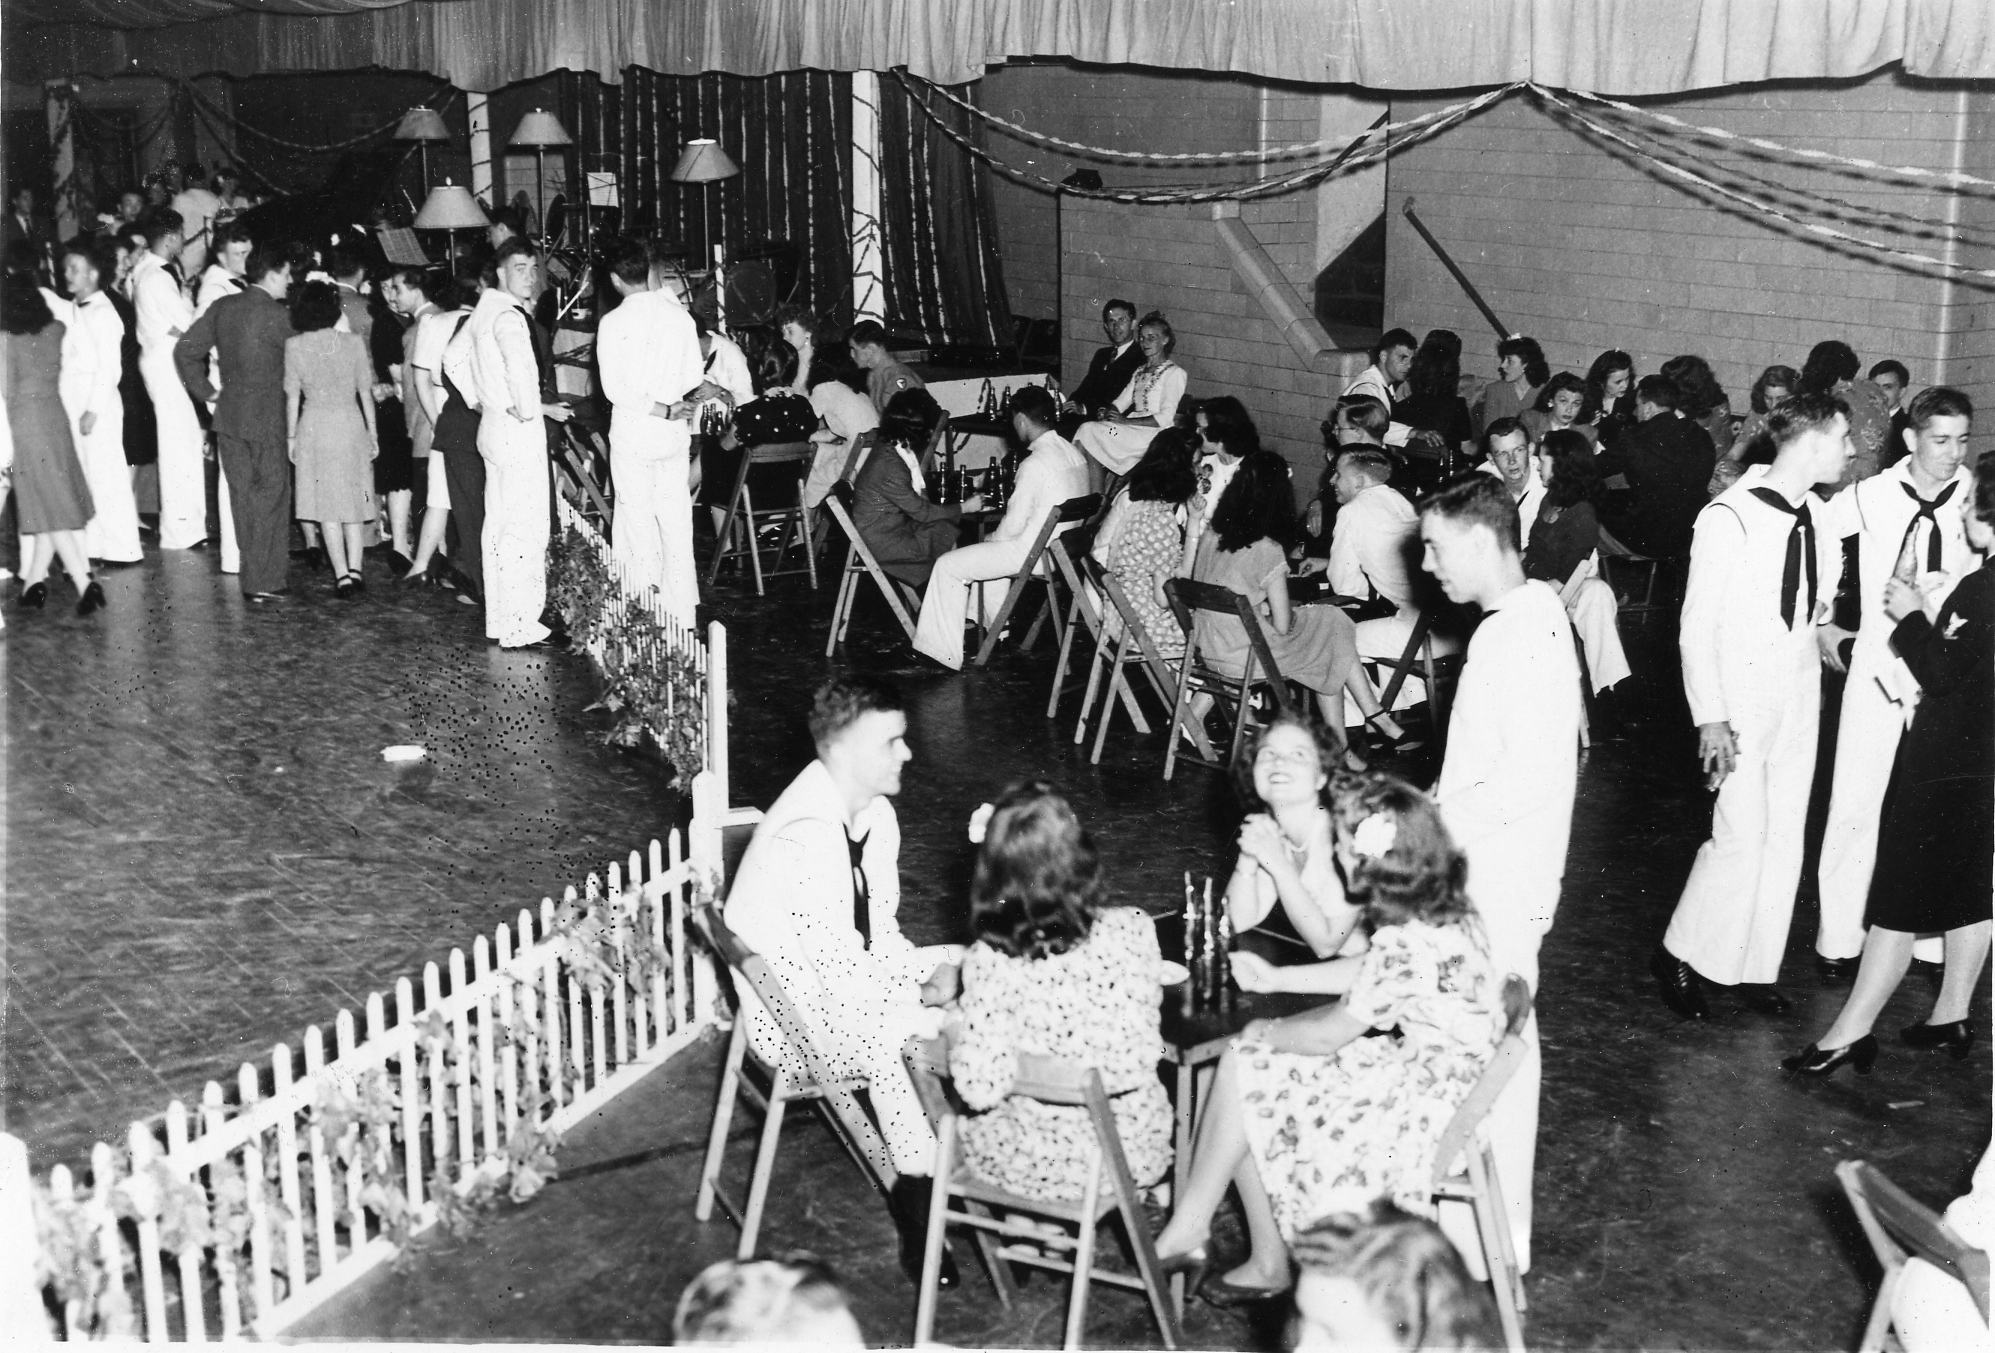 Wartime dance at the Field House, Spring 1942